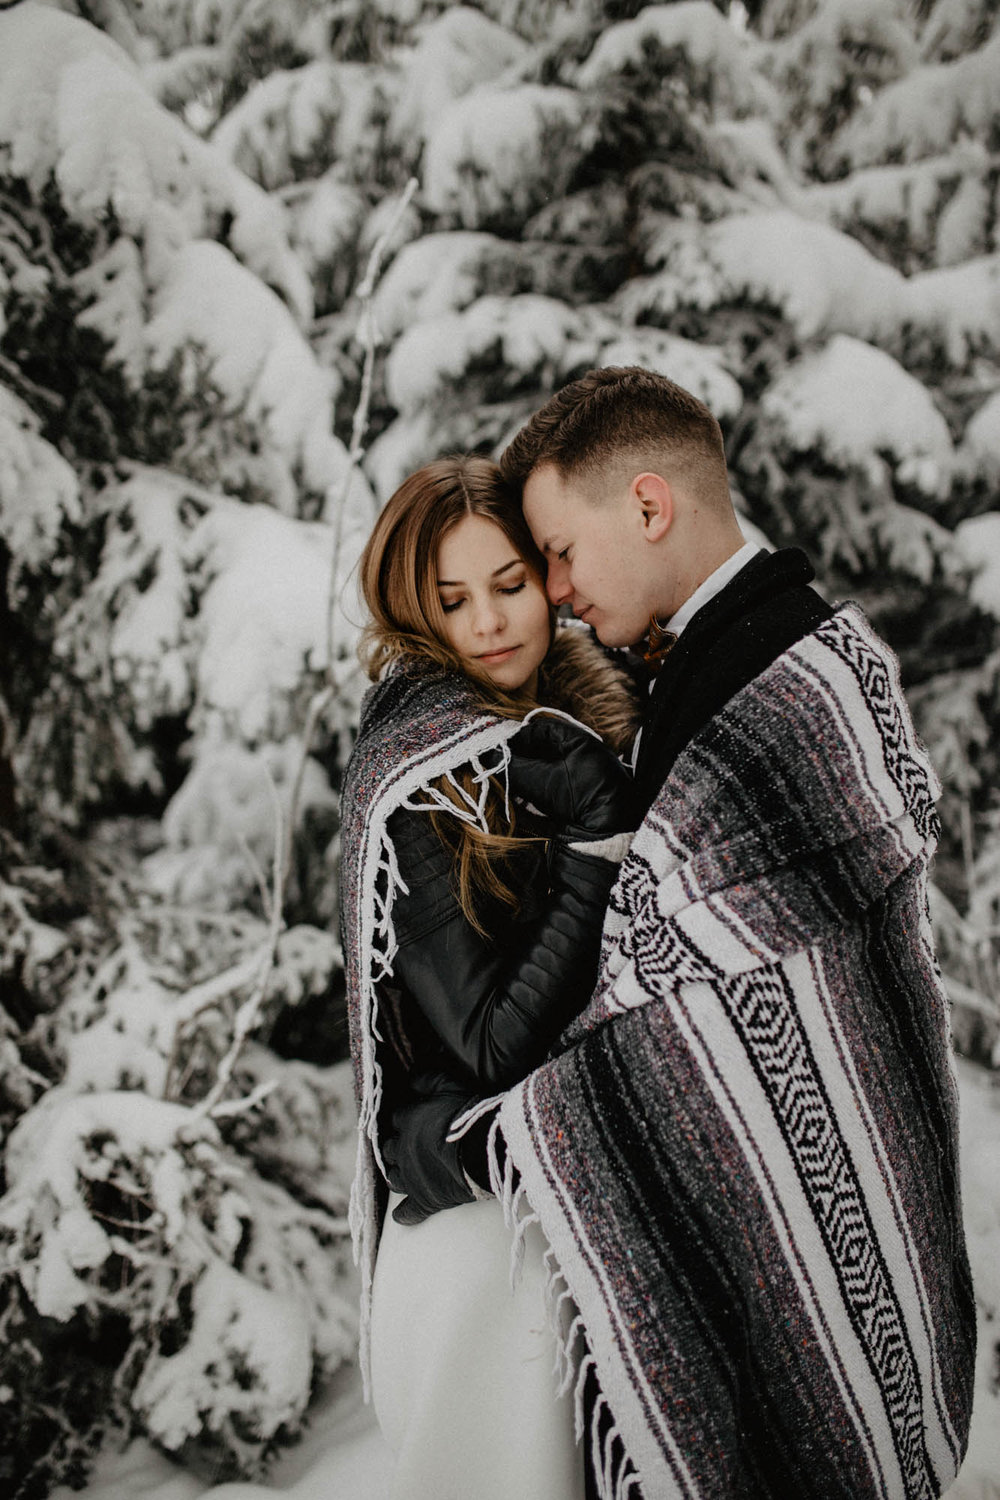 ashley_schulman_photography-winter_wedding_tampere-31.jpg